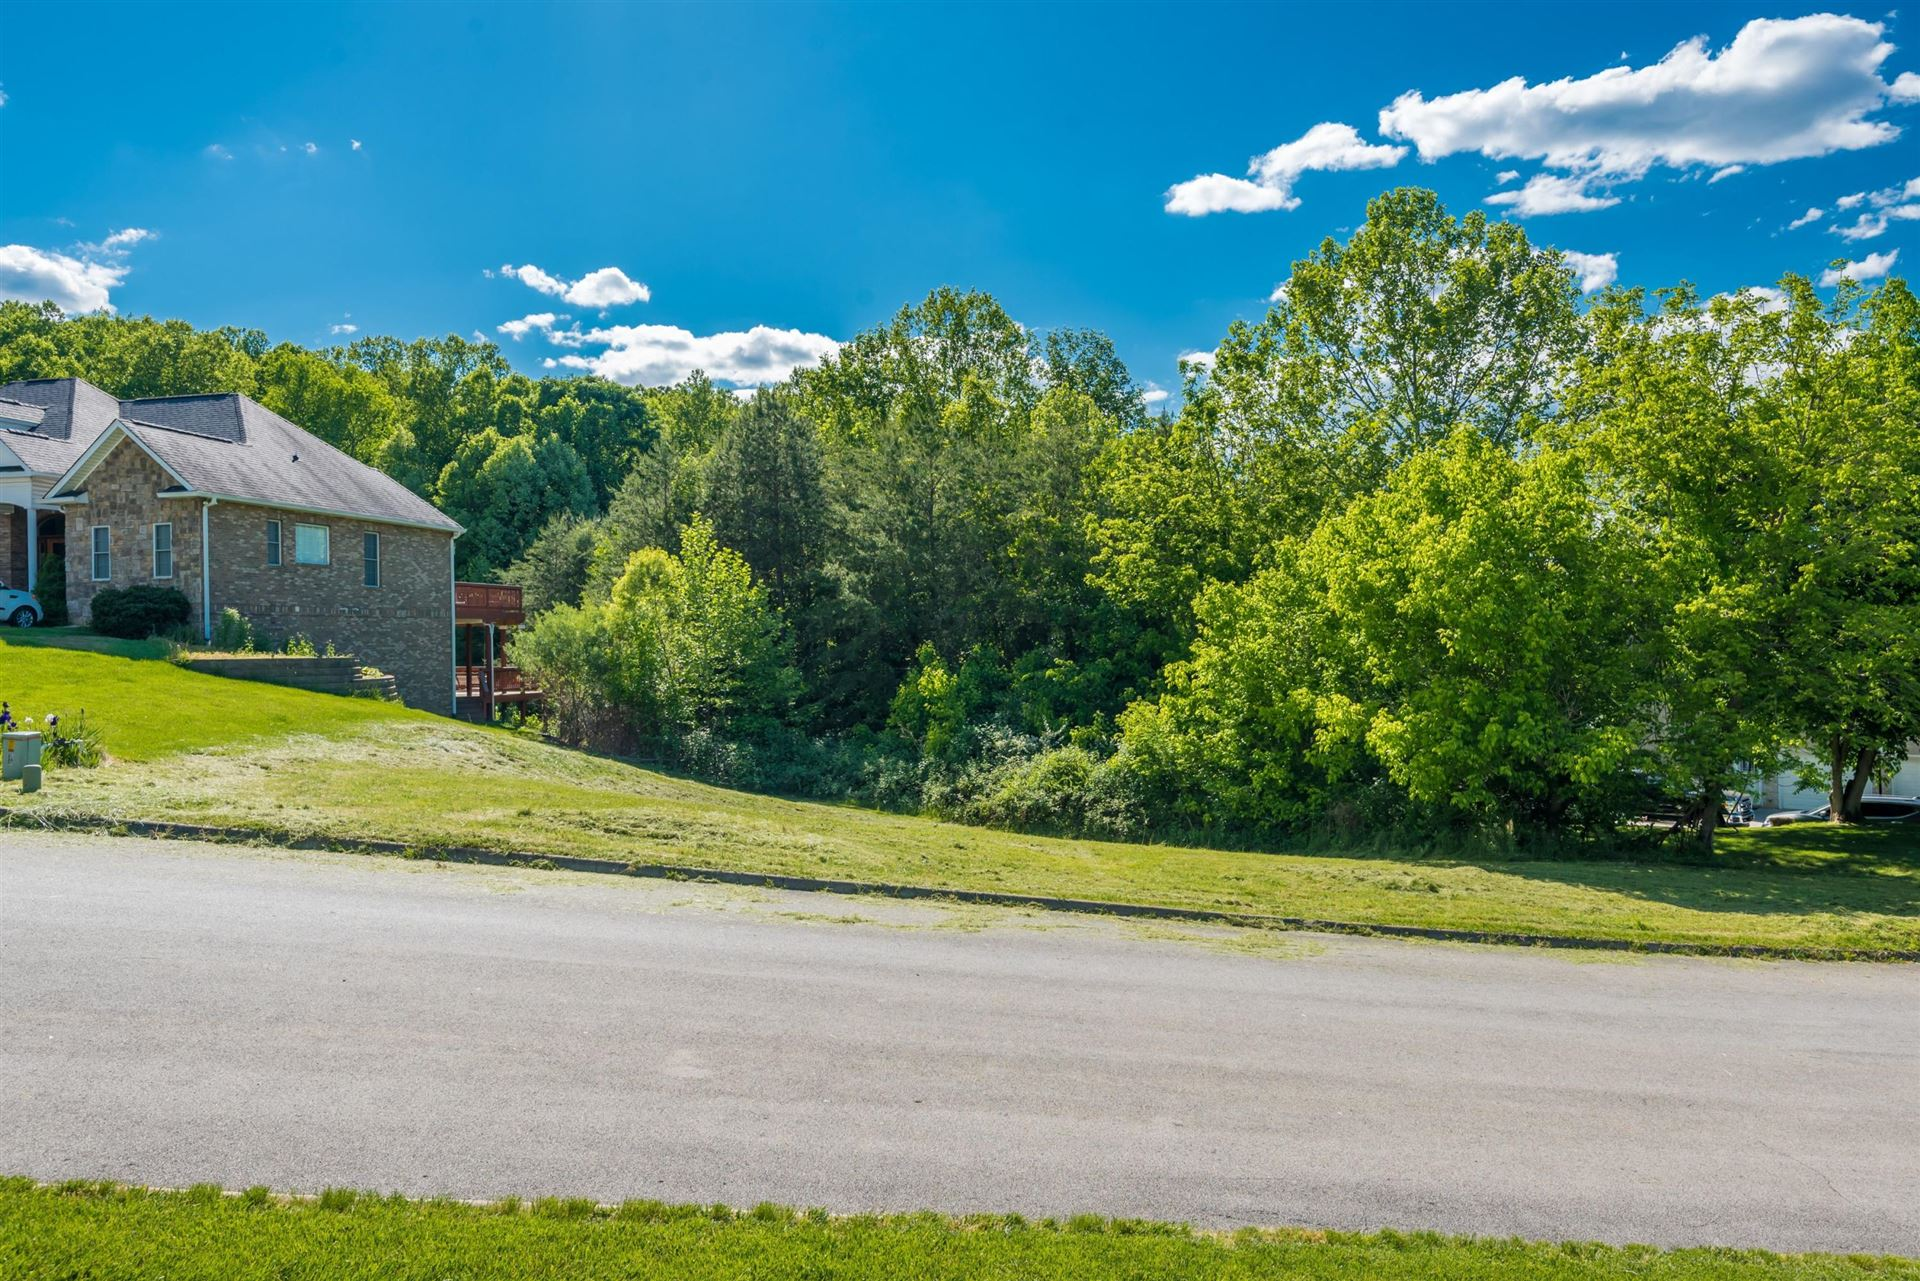 Photo of 22 Rivers Run Blvd, Oak Ridge, TN 37830 (MLS # 1153123)